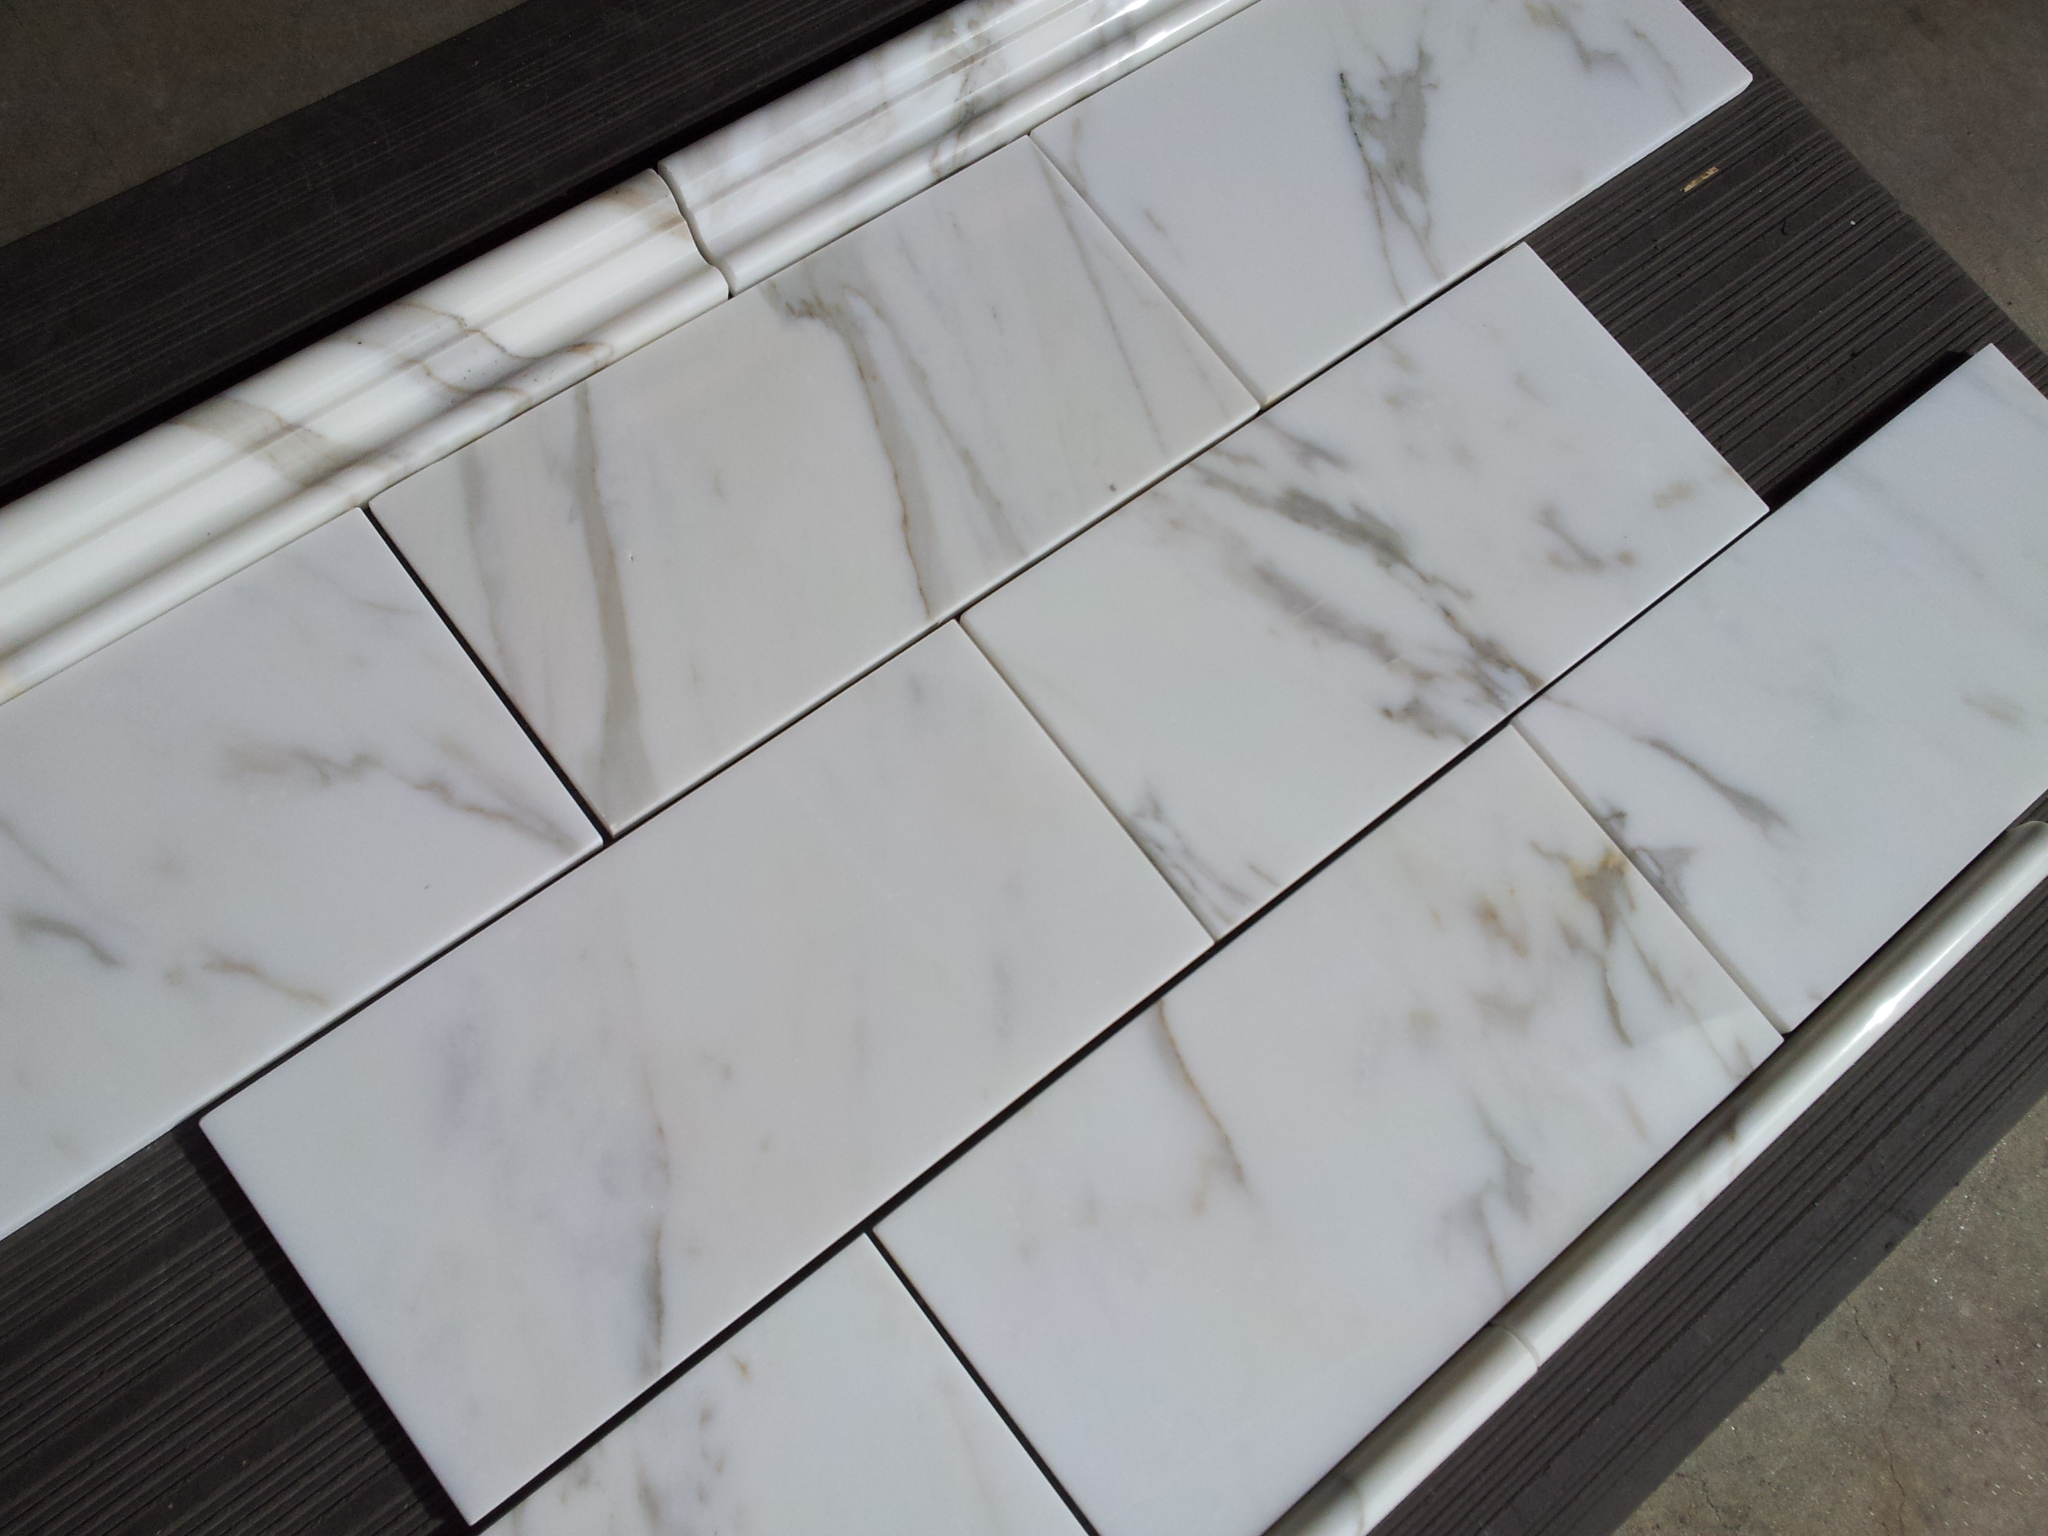 14 95sf Calacatta Gold Italian Marble 6 215 12 Subway Tile